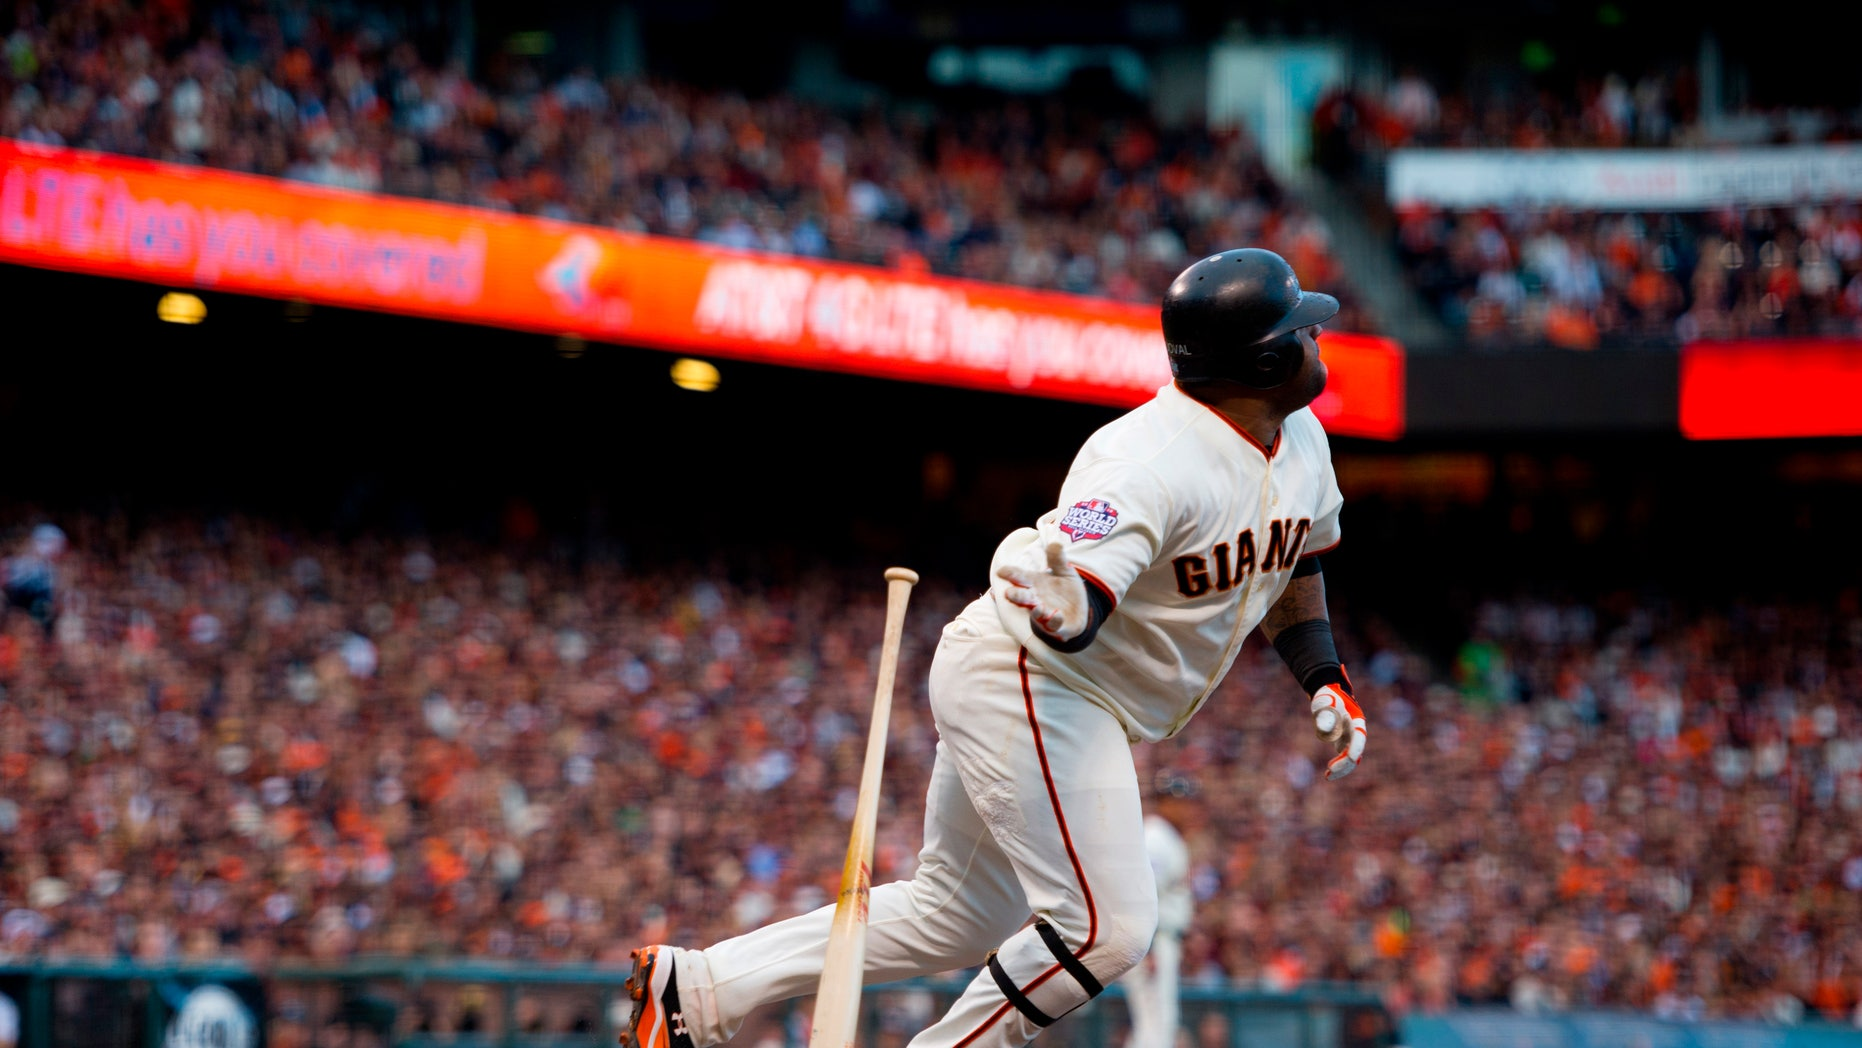 Oct. 24, 2012: San Francisco Giants' Pablo Sandoval (48) watches his solo home run against the Detroit Tigers in the first inning during Game 1 of baseball's World Series in San Francisco.